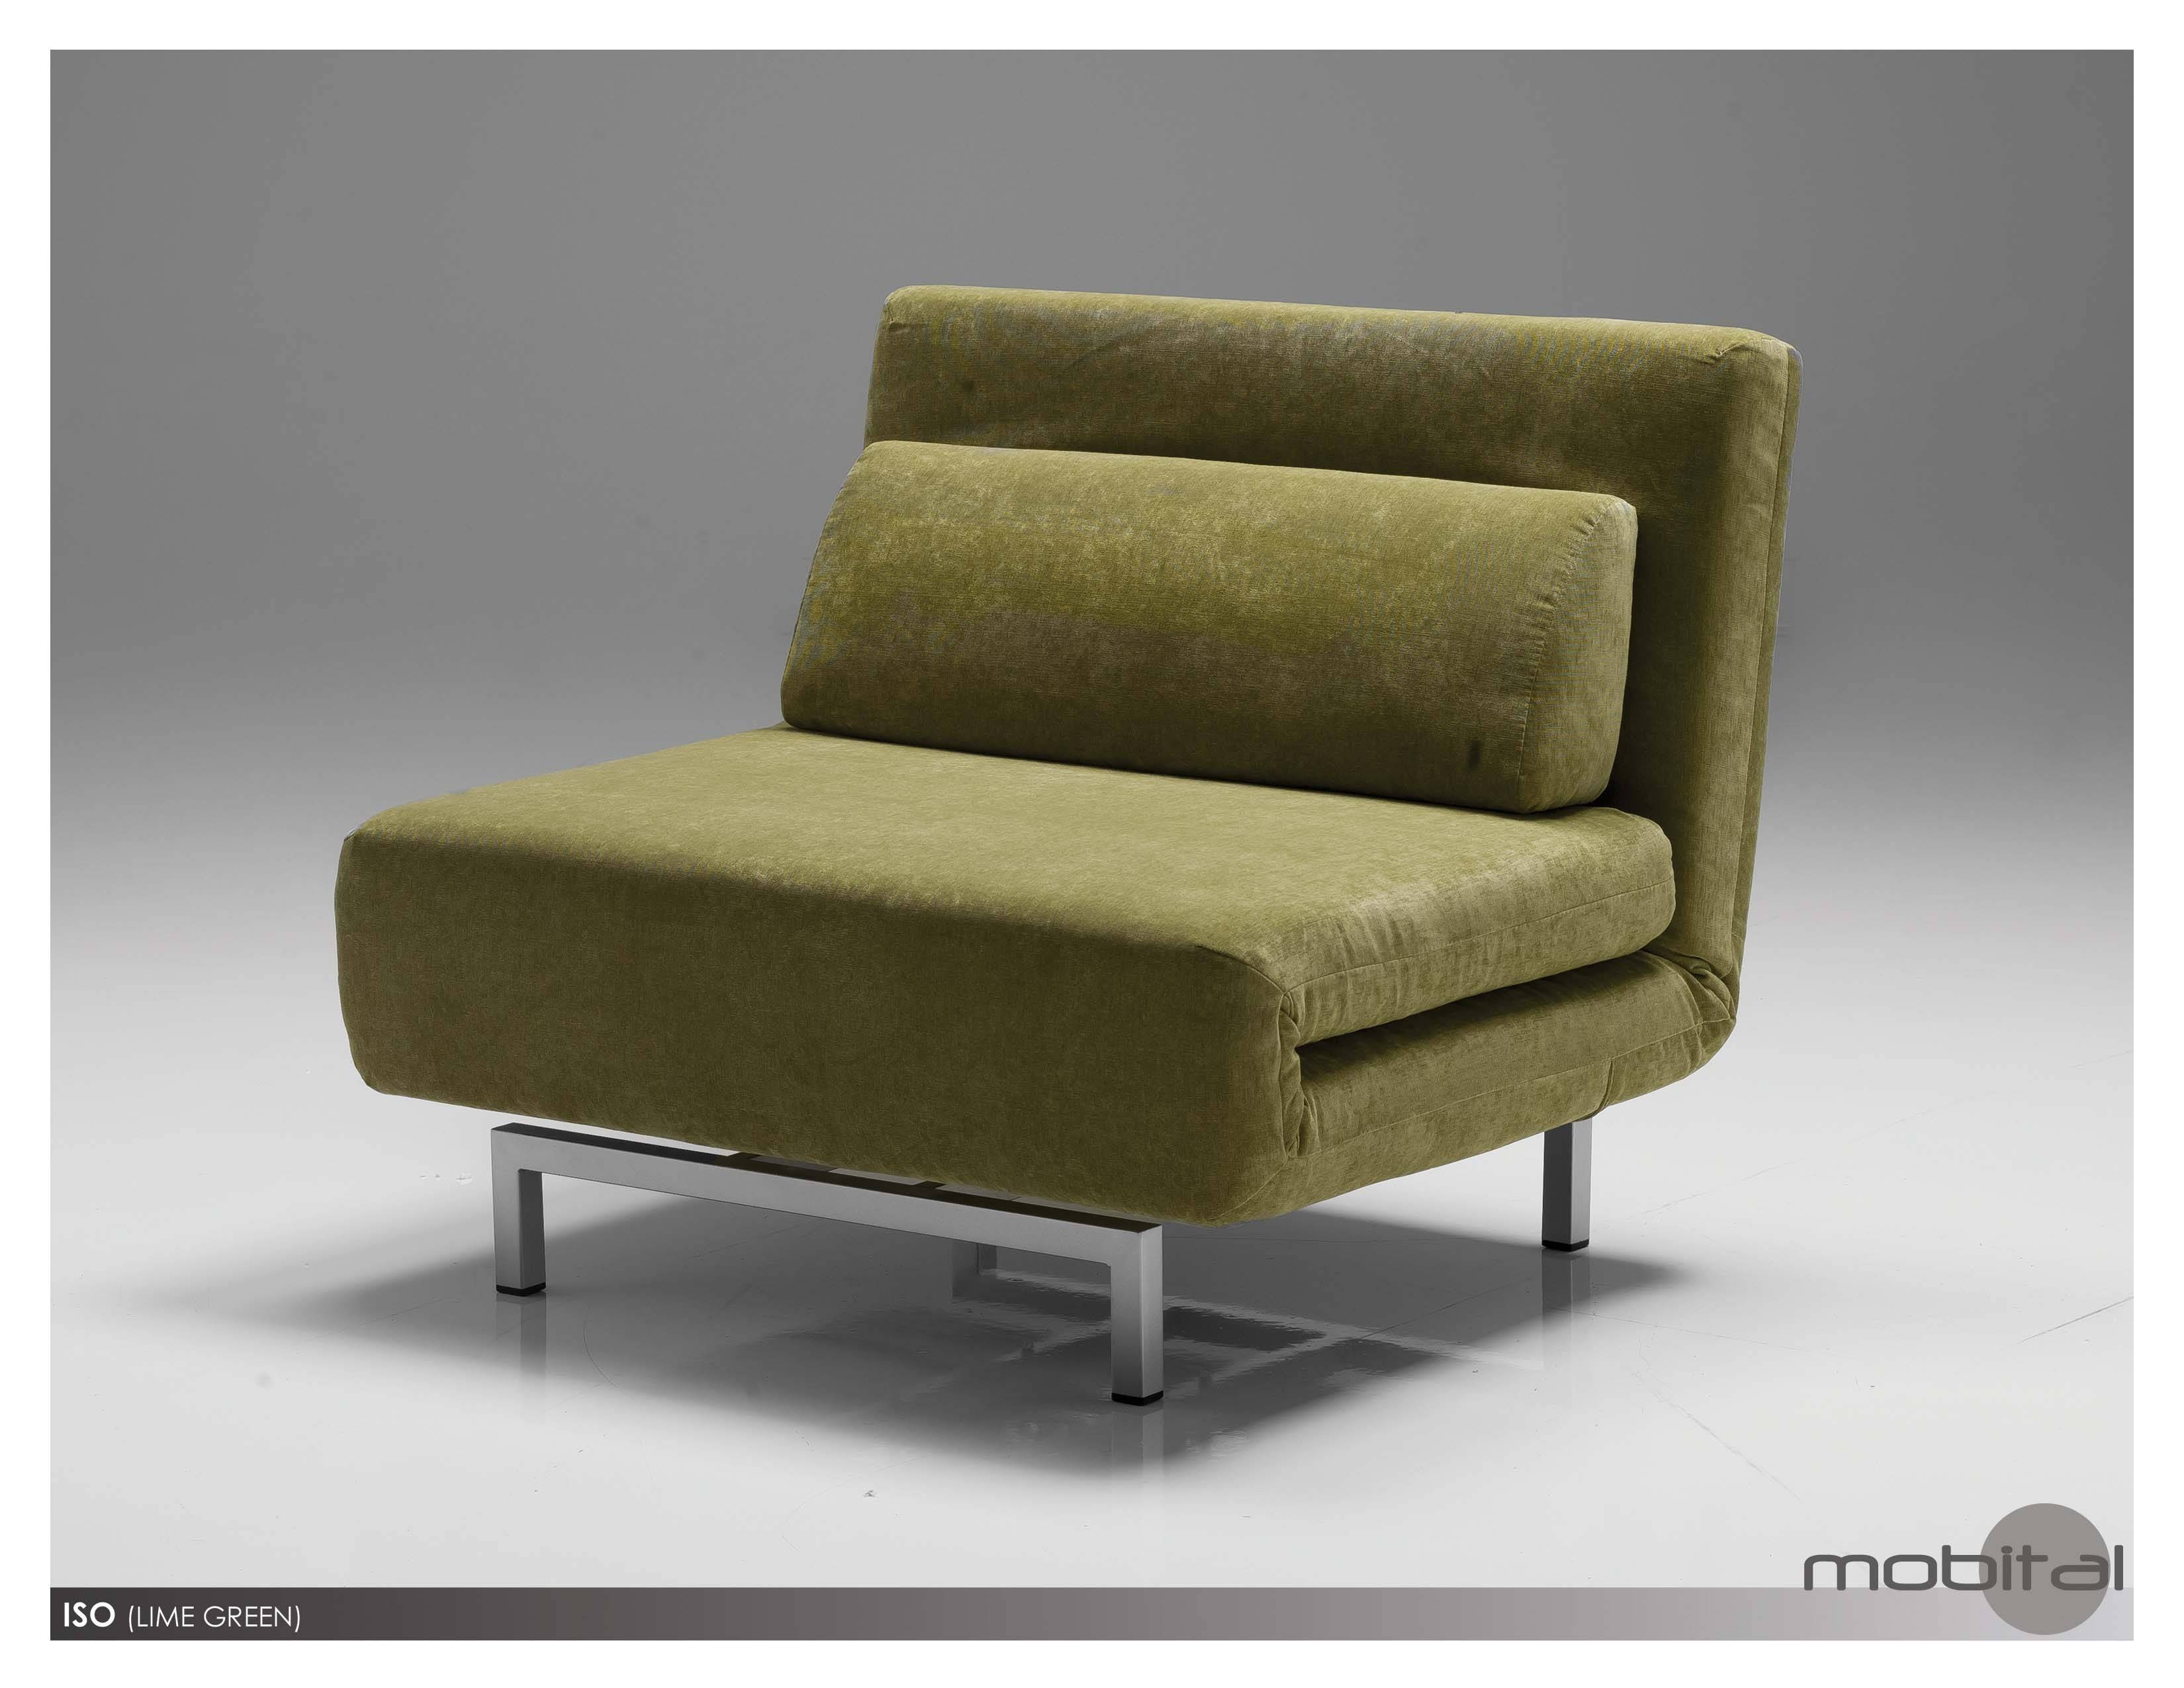 Mobital Iso-Sofabed Single Modern Furnishings intended for Single Chair Sofa Bed (Image 11 of 30)